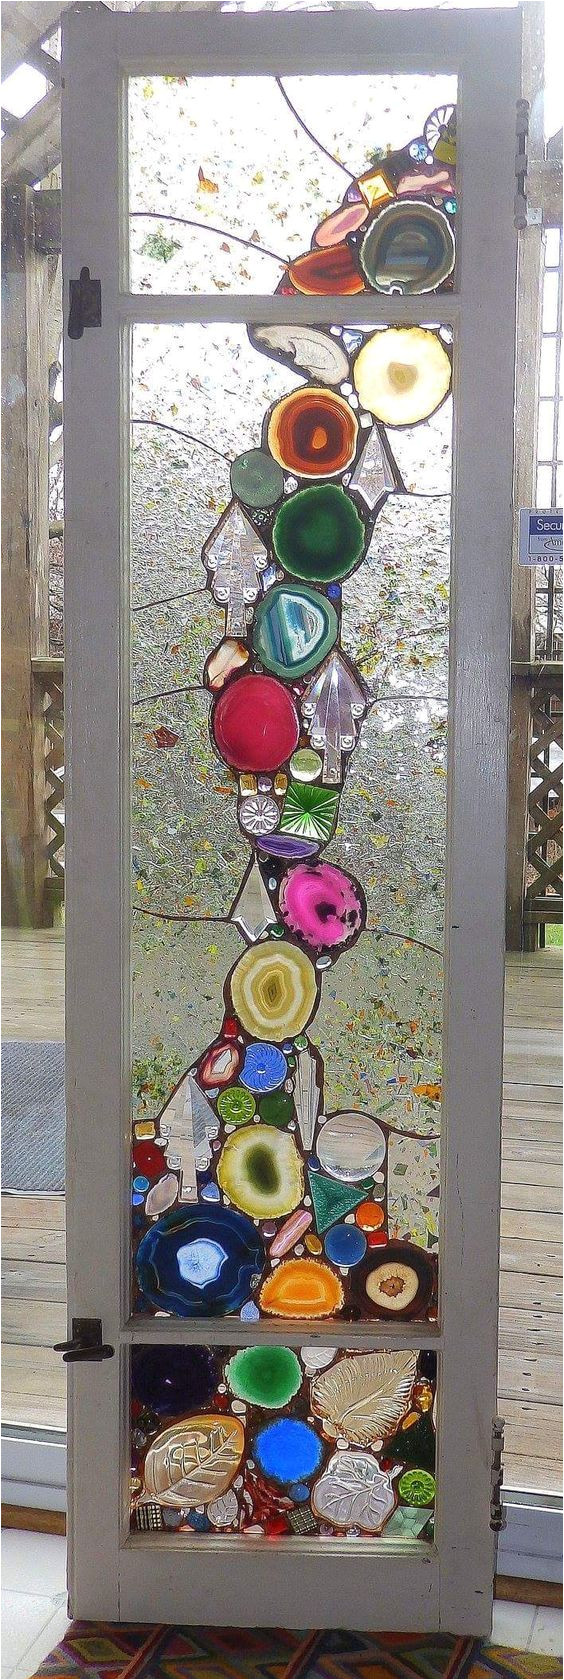 Retail Stained Glass Supplies Denver 43 Best Stained Glass Images On Pinterest Stained Glass Windows